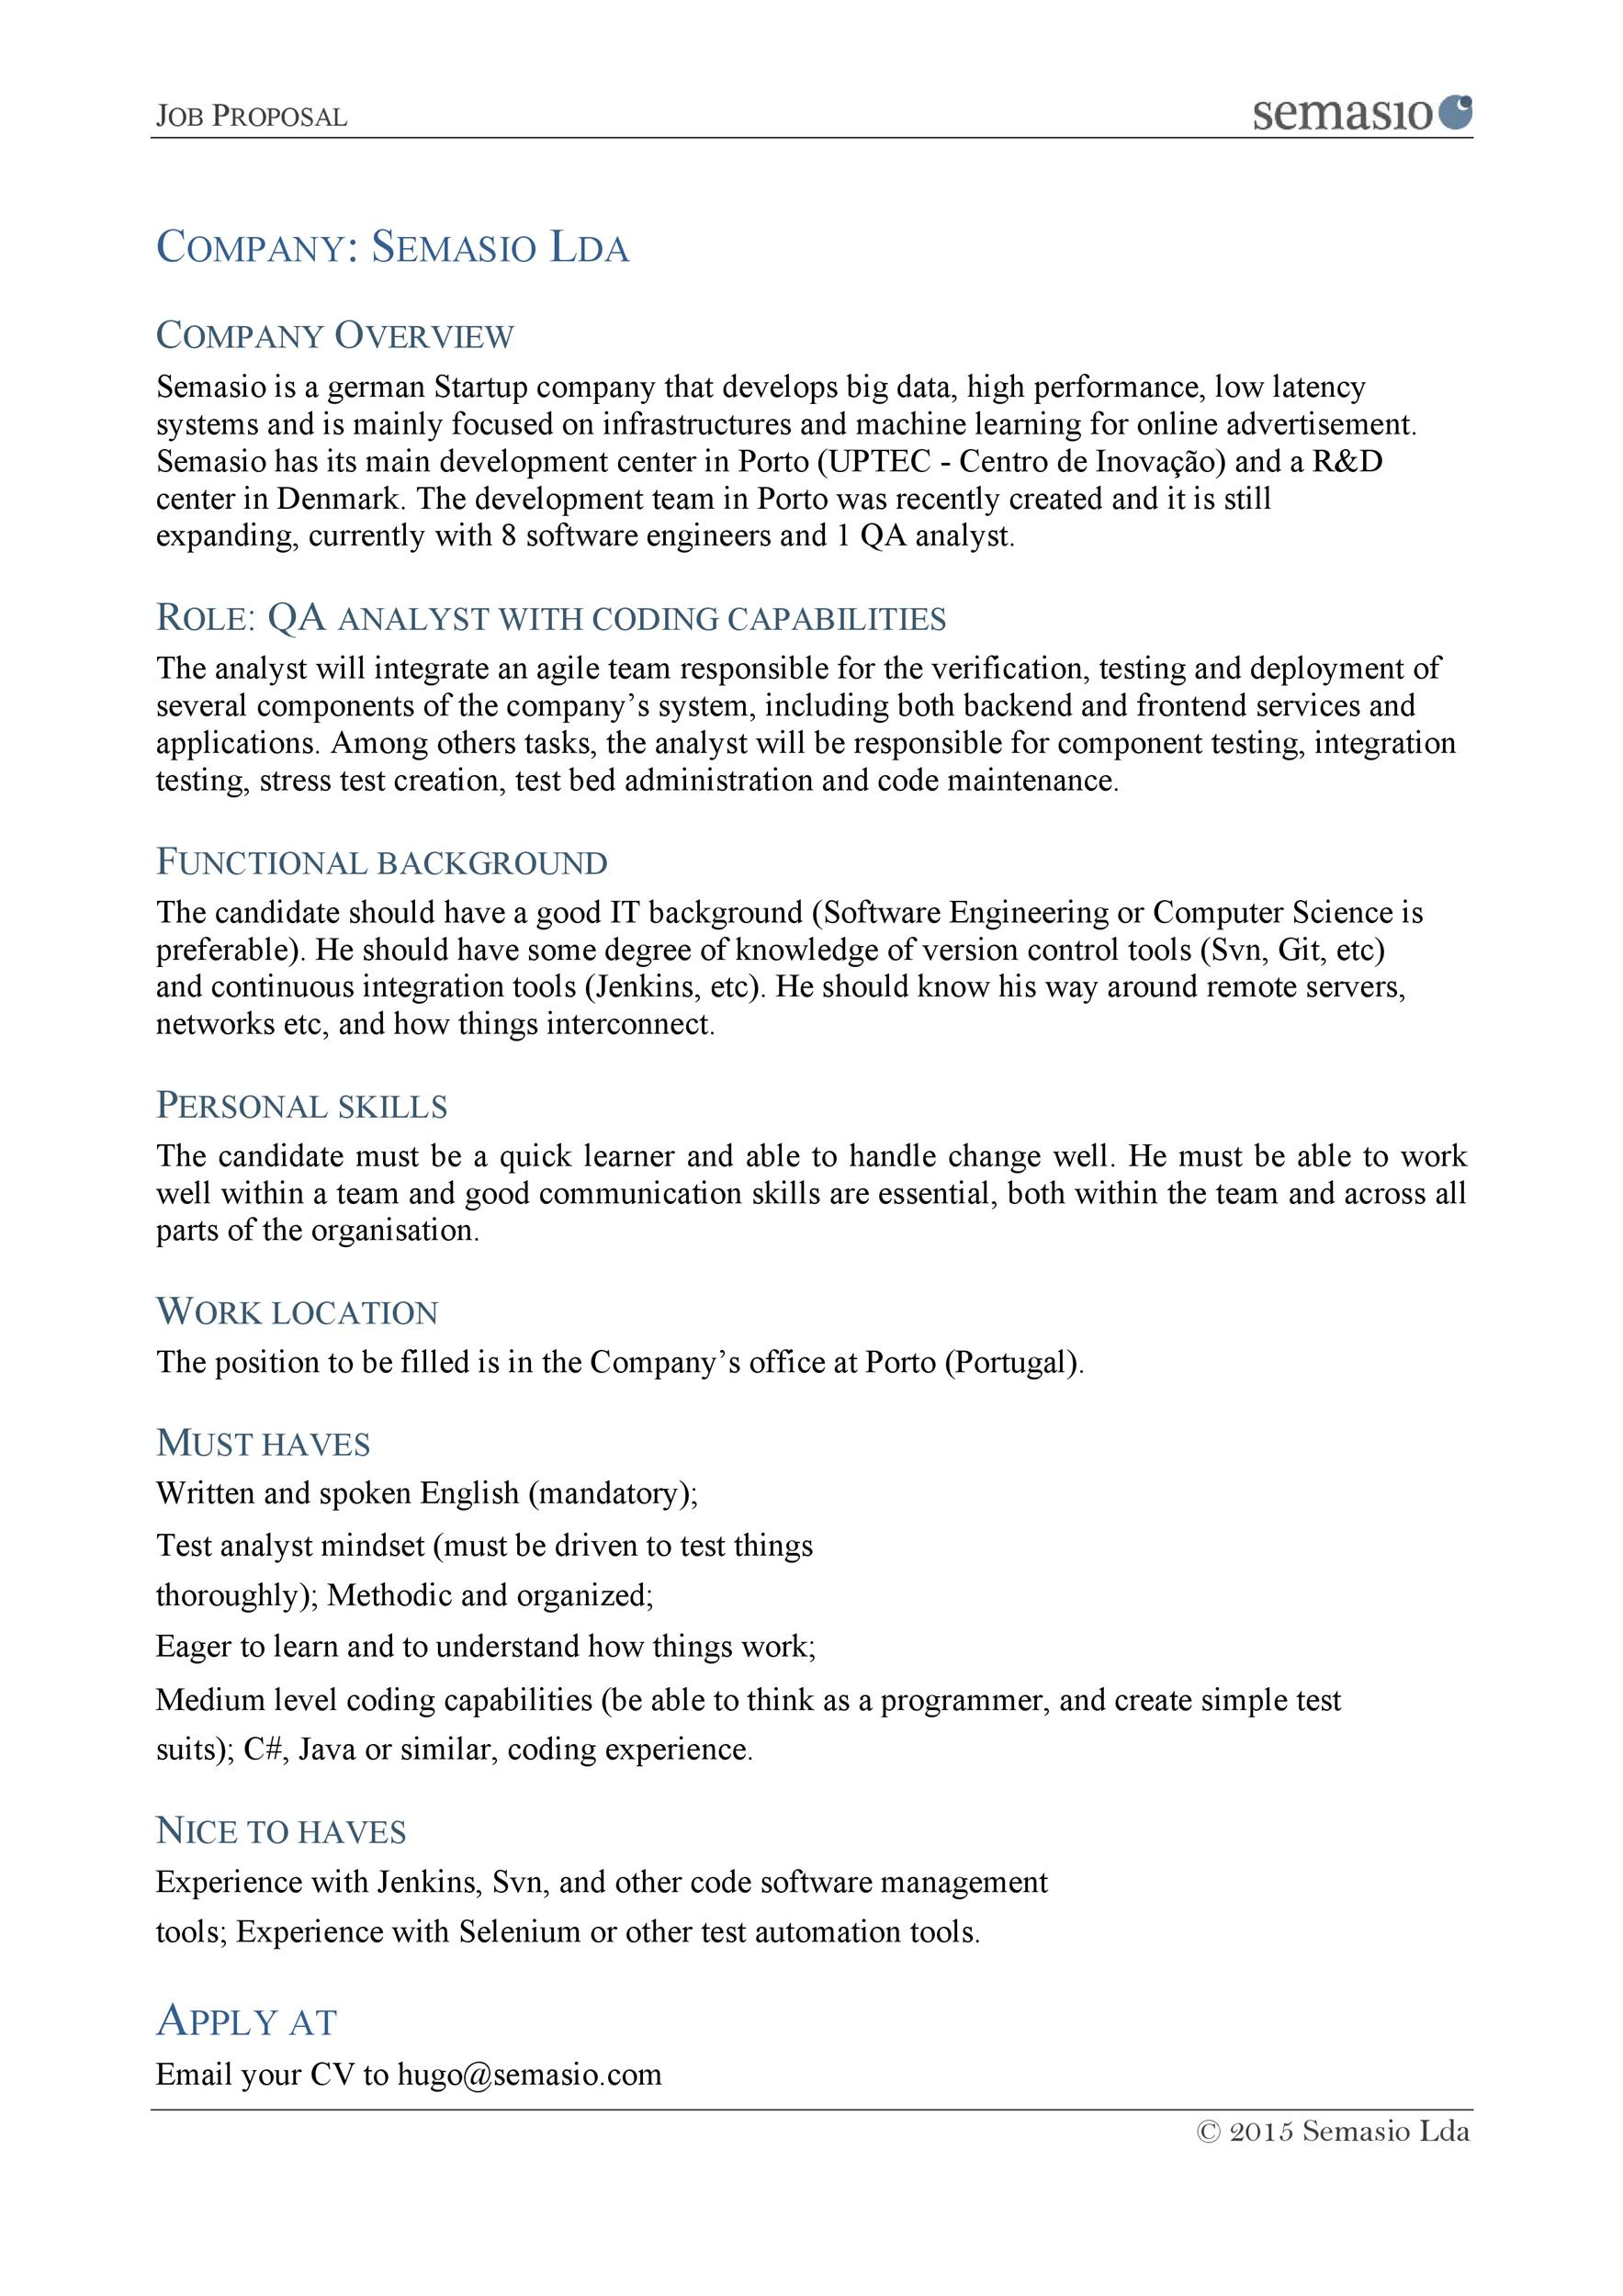 how to write a job proposal sample